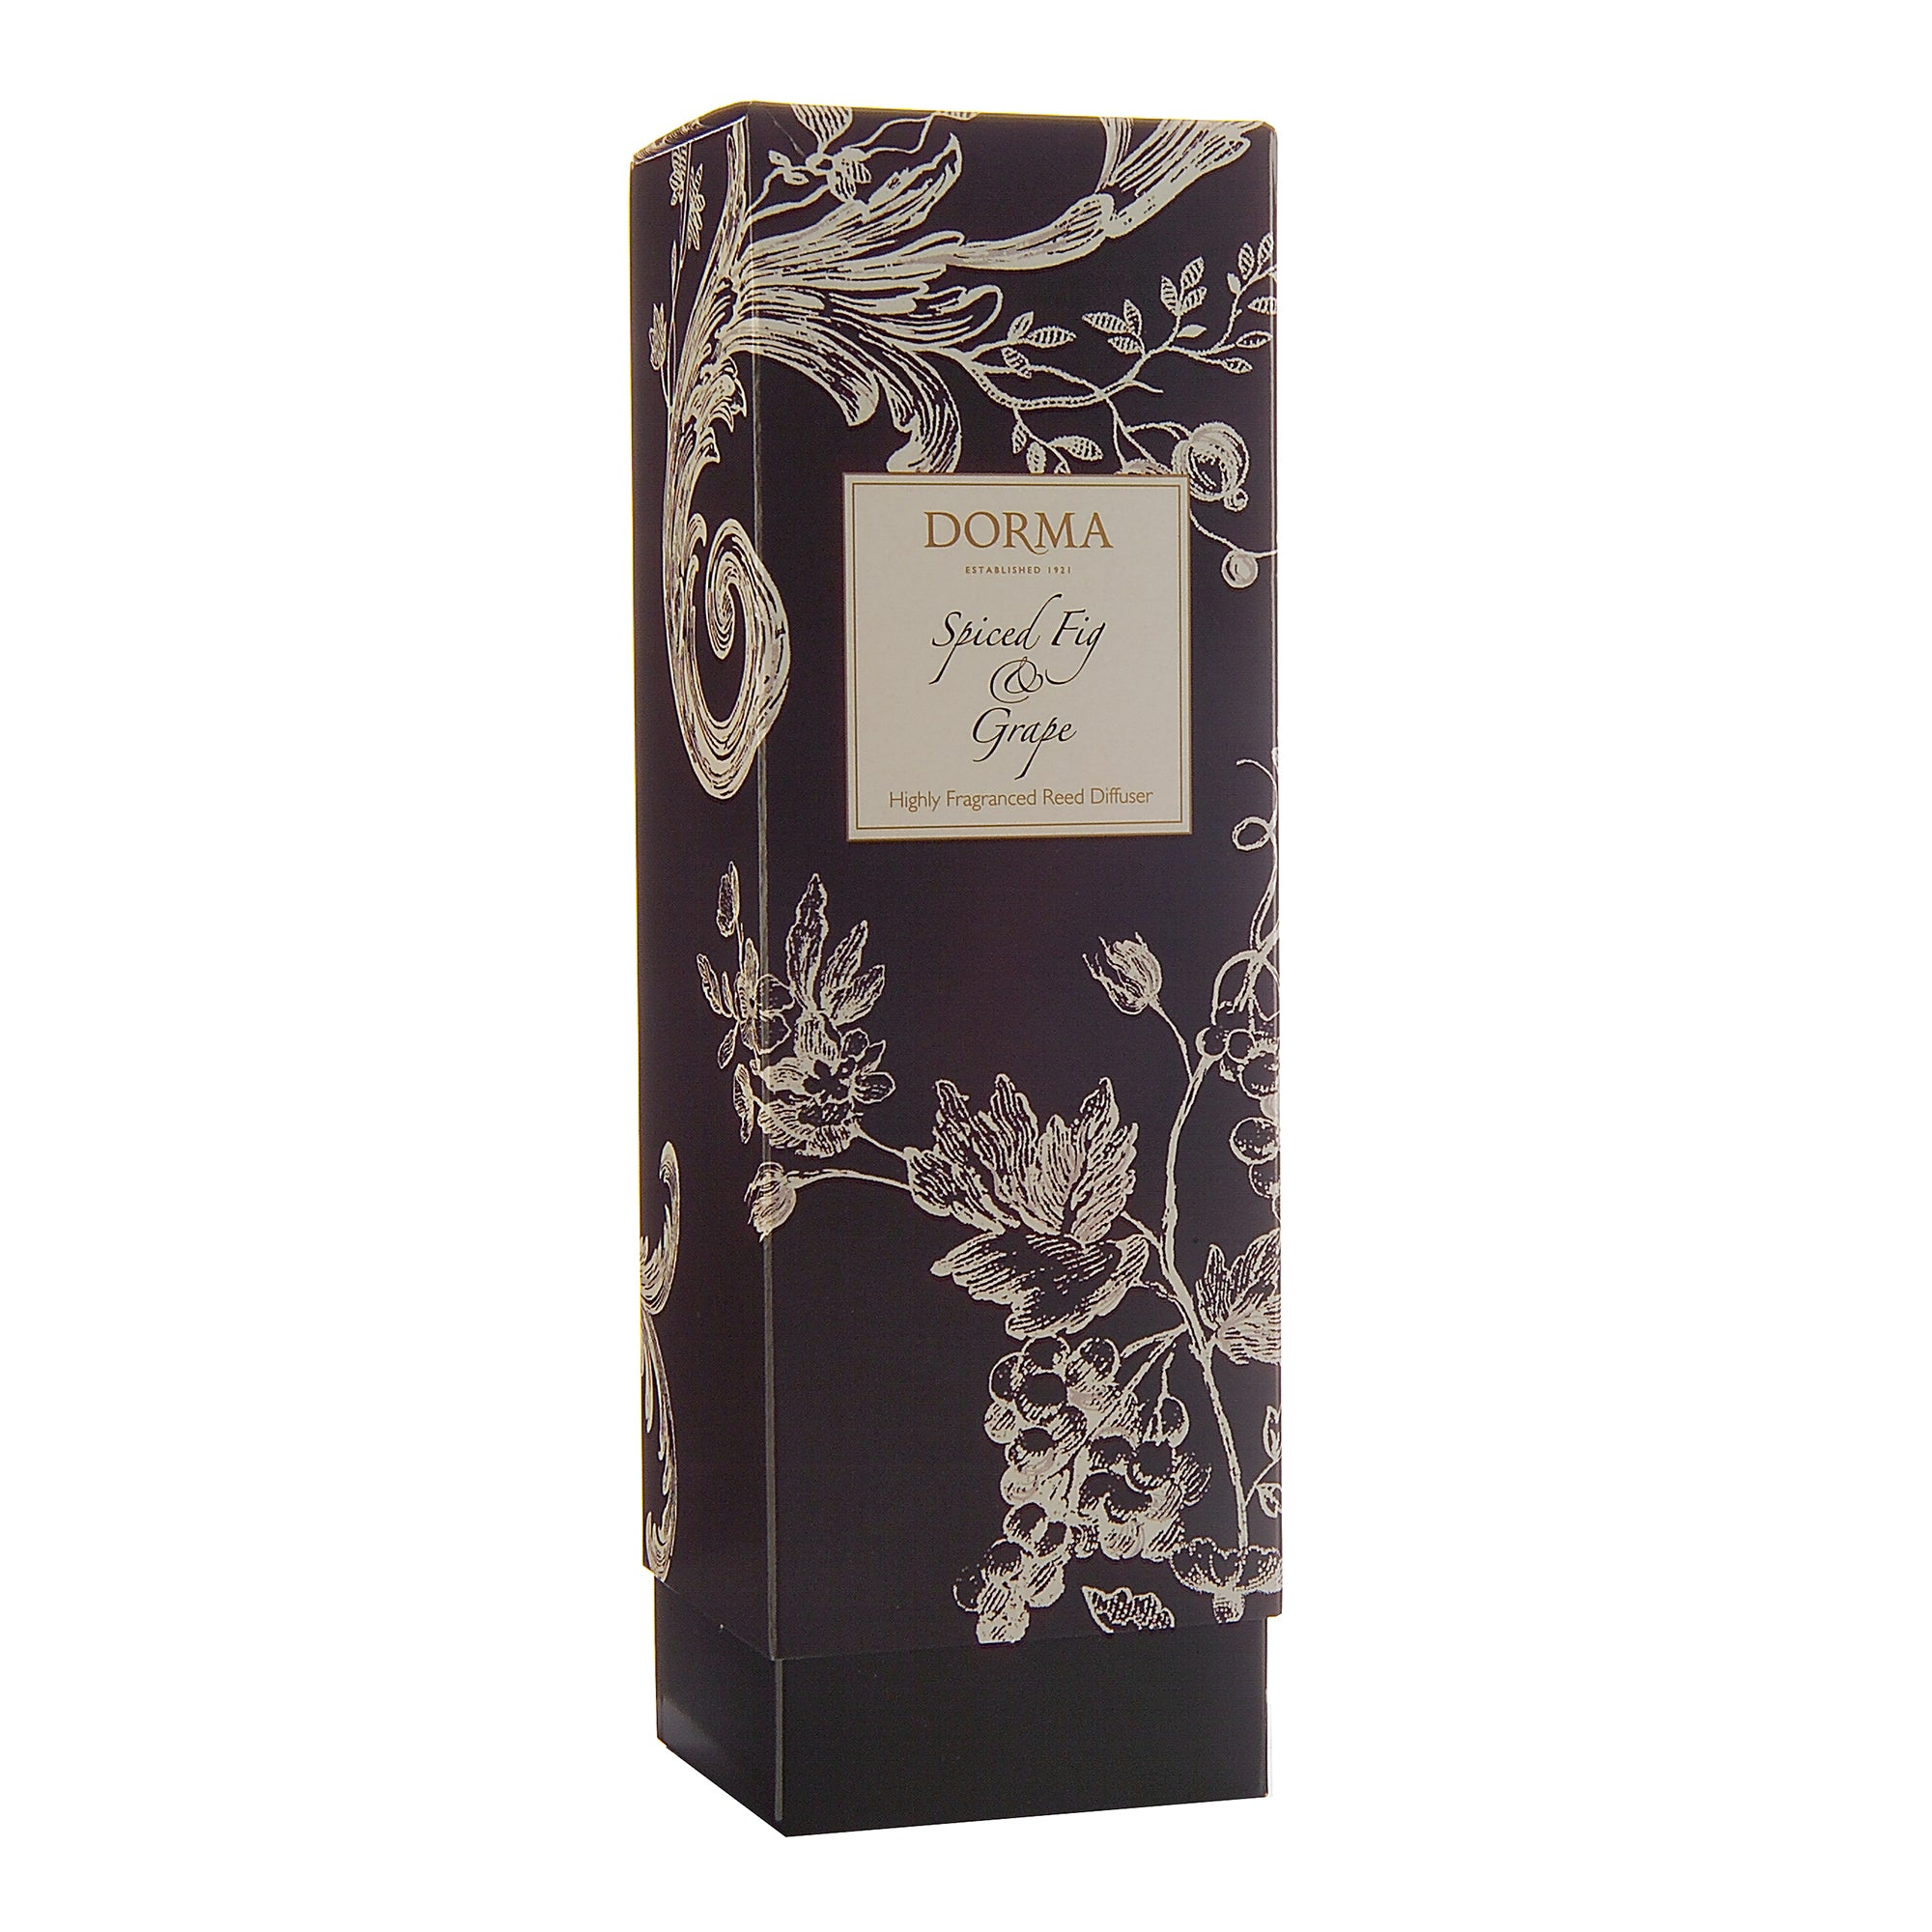 Dorma Spiced Fig and Grape 100ml Reed Diffuser